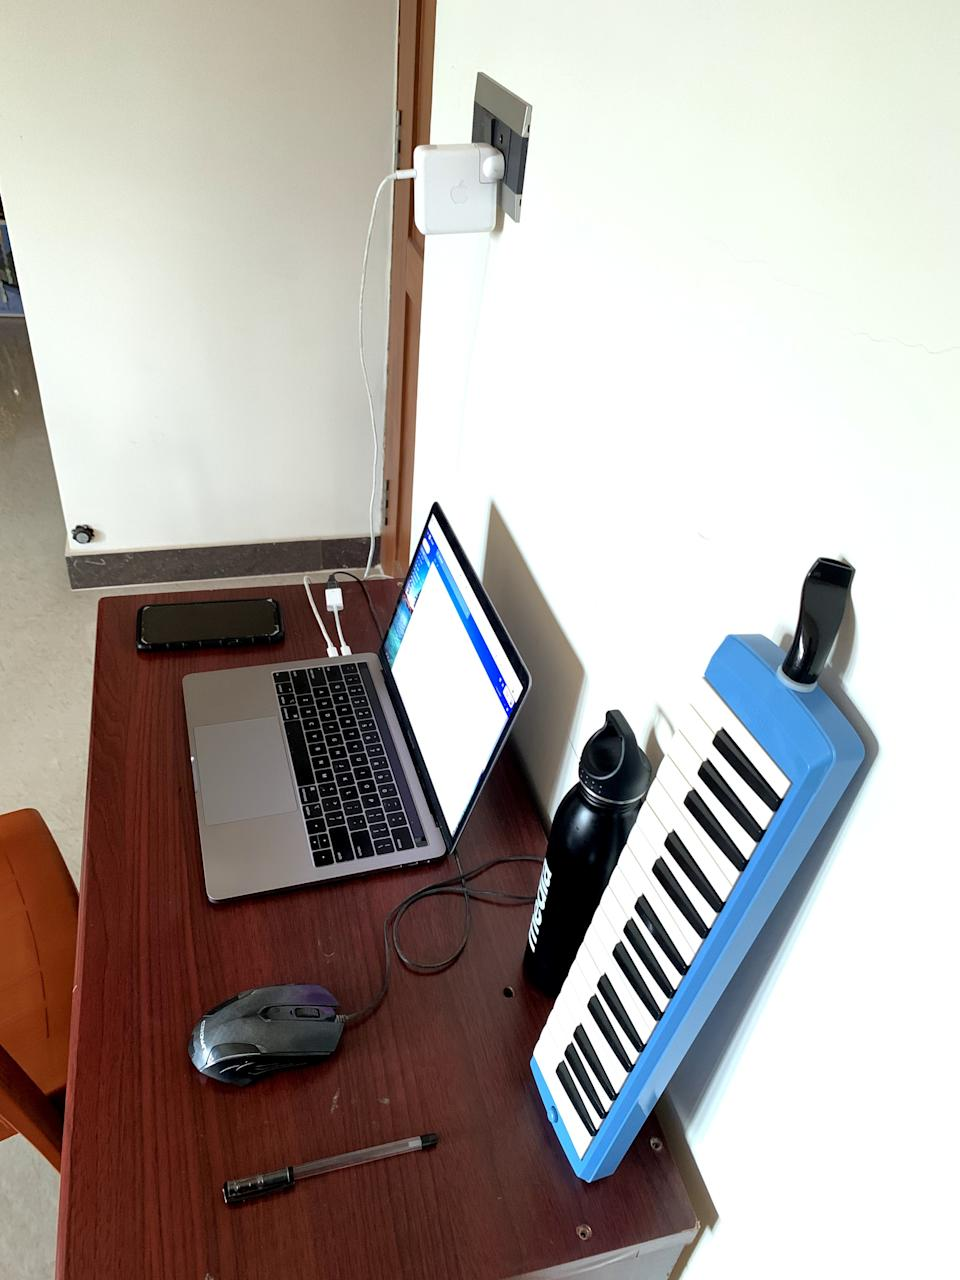 When you want to play the keyboard in between meetings <em>Photo credit: Vinit Vijay Poojari</em>